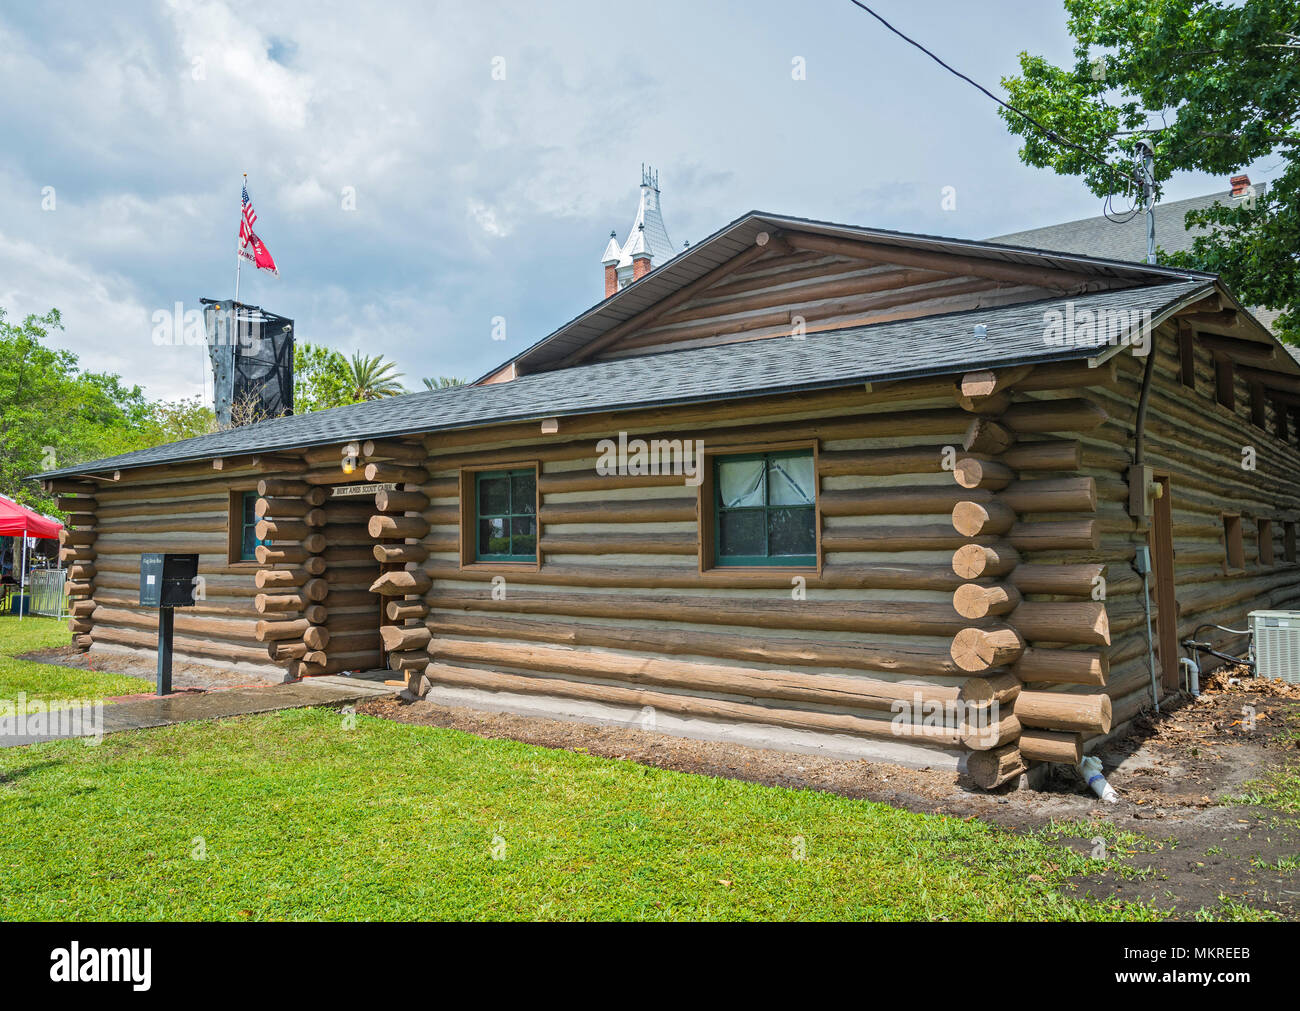 Burt Ames Scout Cabin is a log cabin meeting place for Boy Scout Troop 84, in Gainesville, Florida. - Stock Image